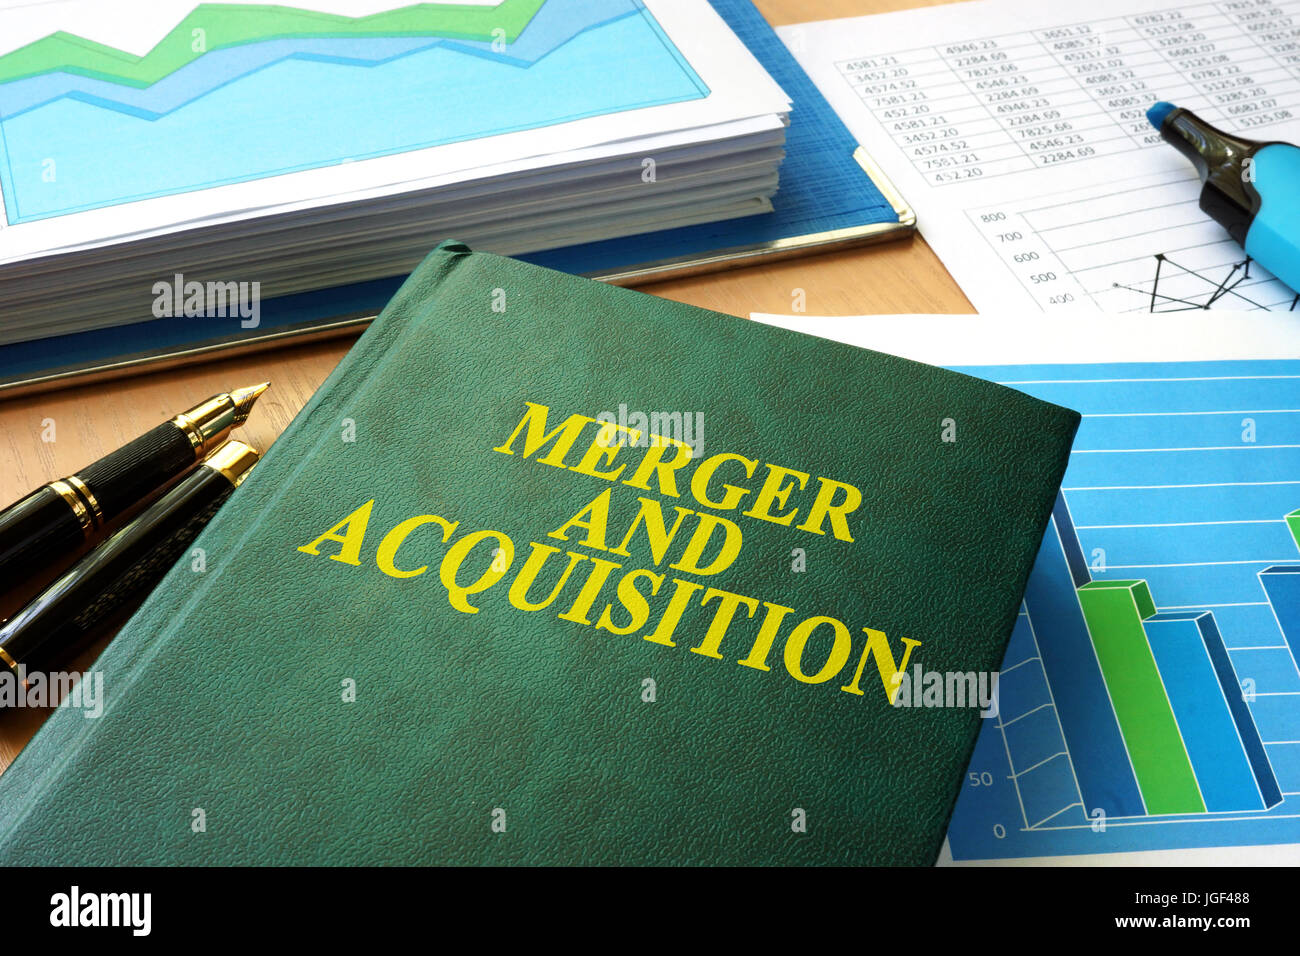 Book with title Merger and Acquisition M&A. - Stock Image